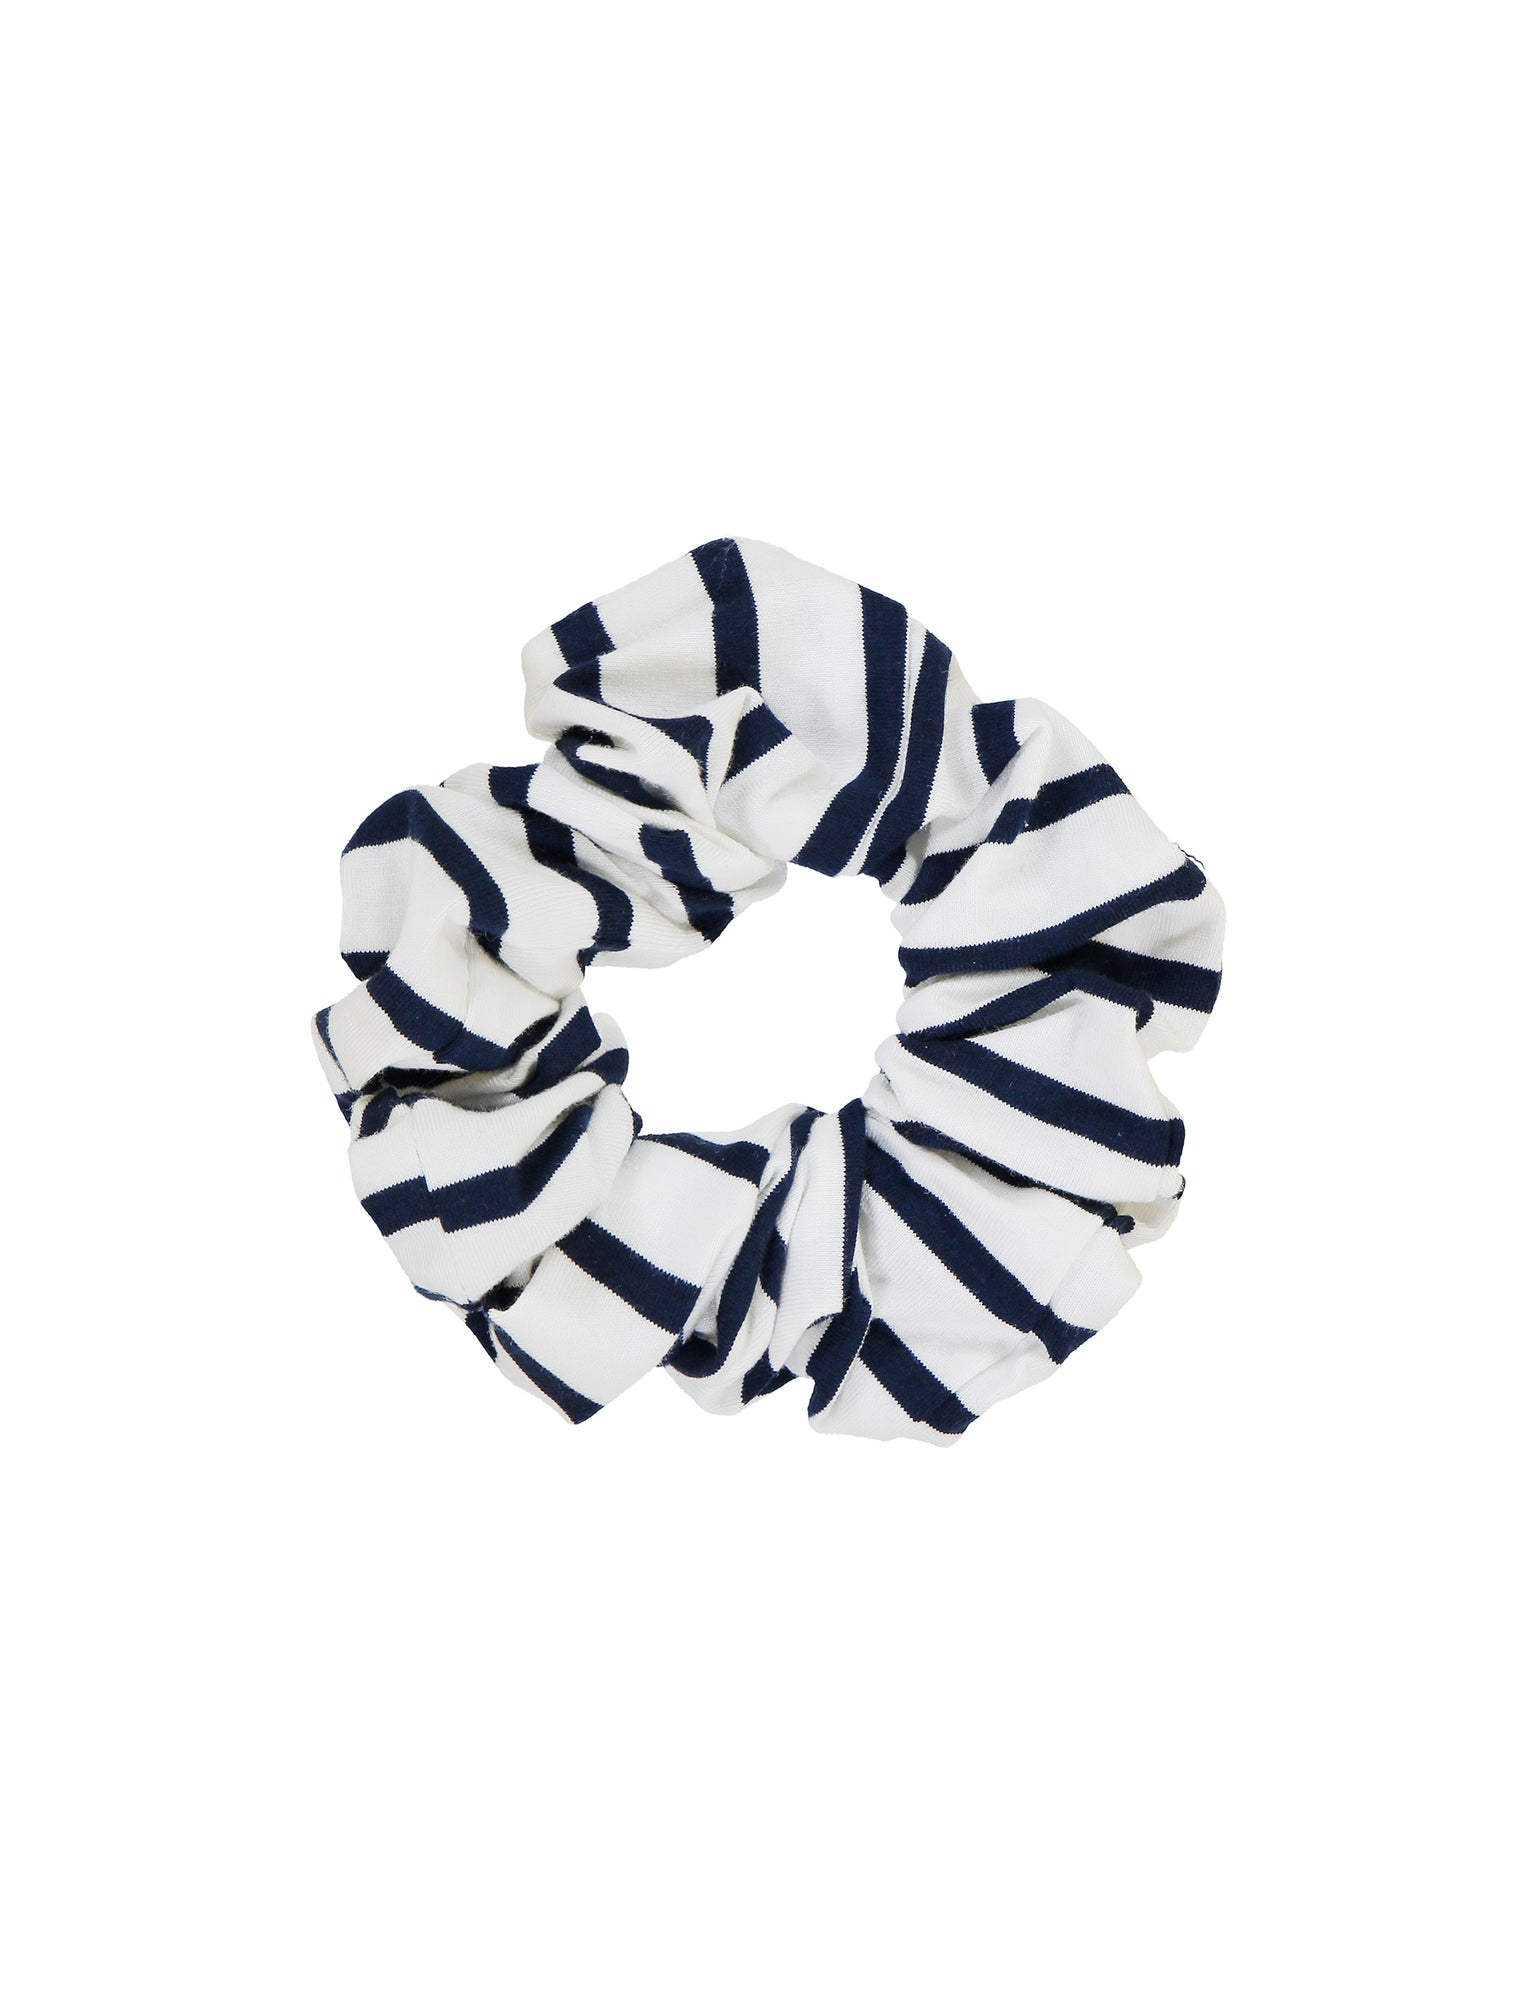 Hairfun Adjienne, Ecru/Navy stripe